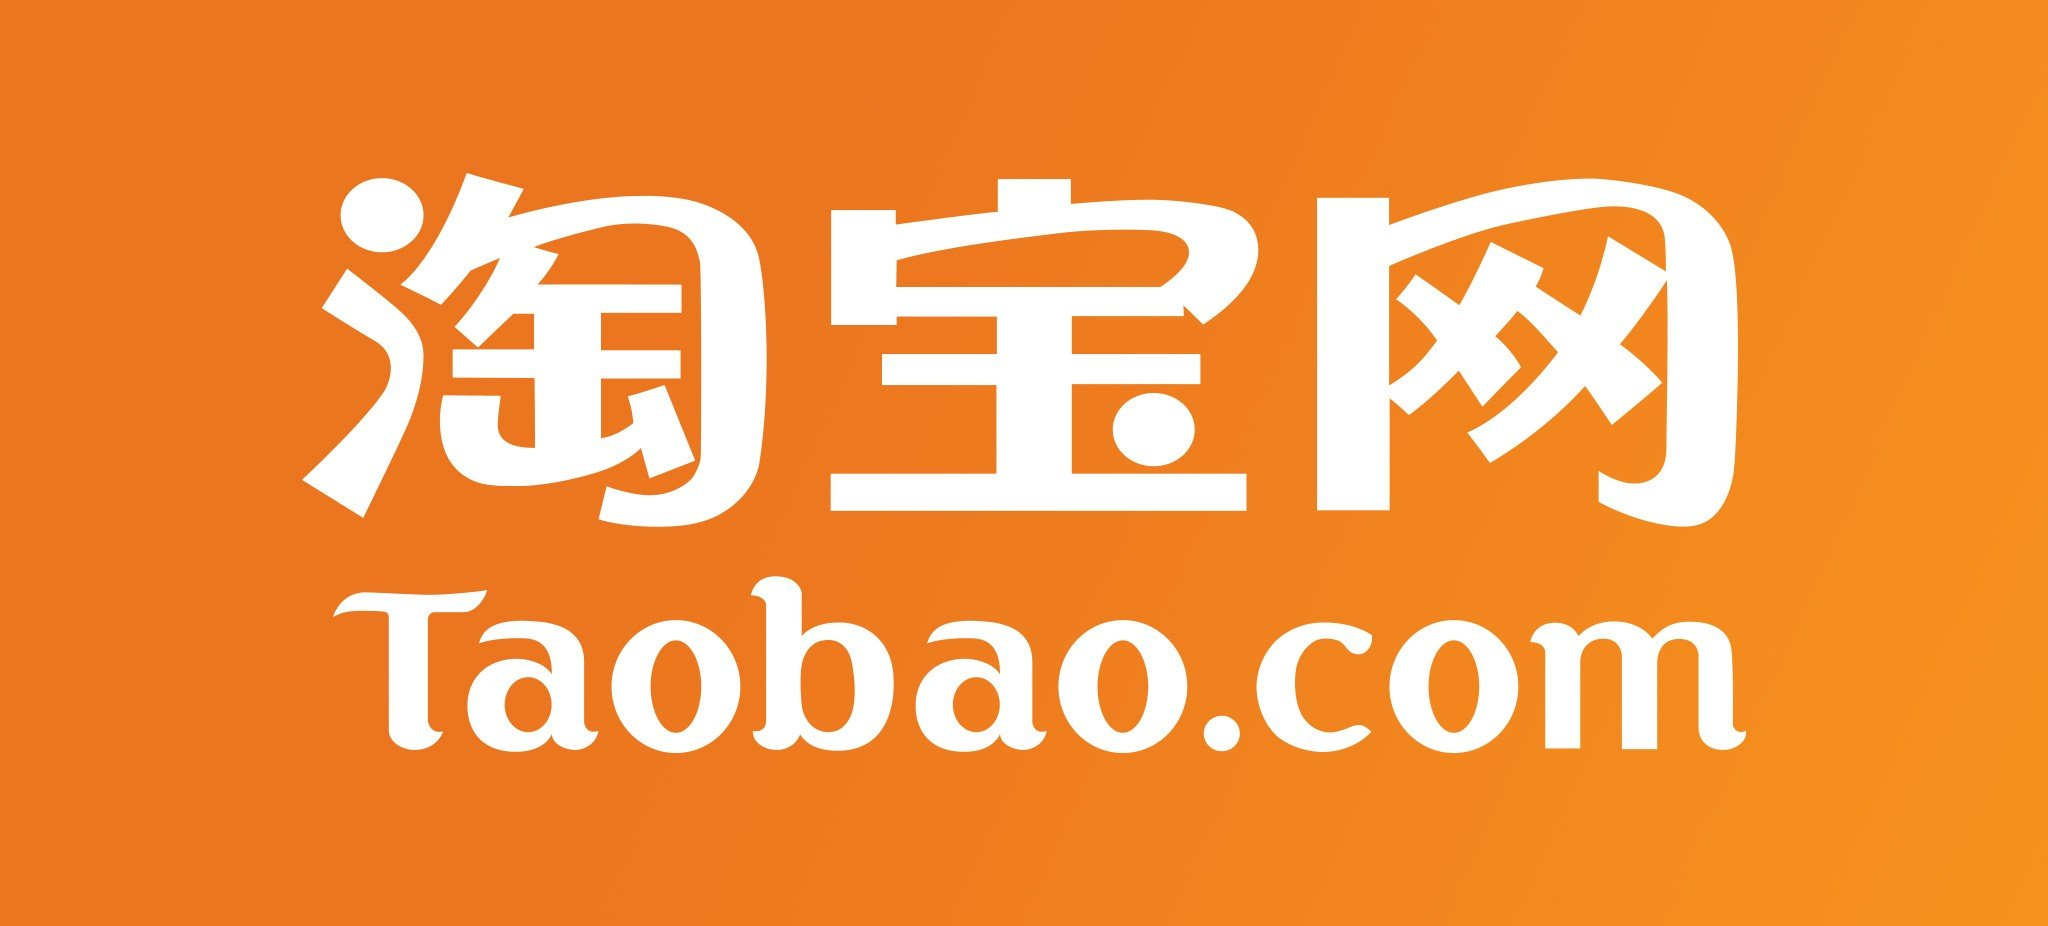 MailShark Taobao Featured Image